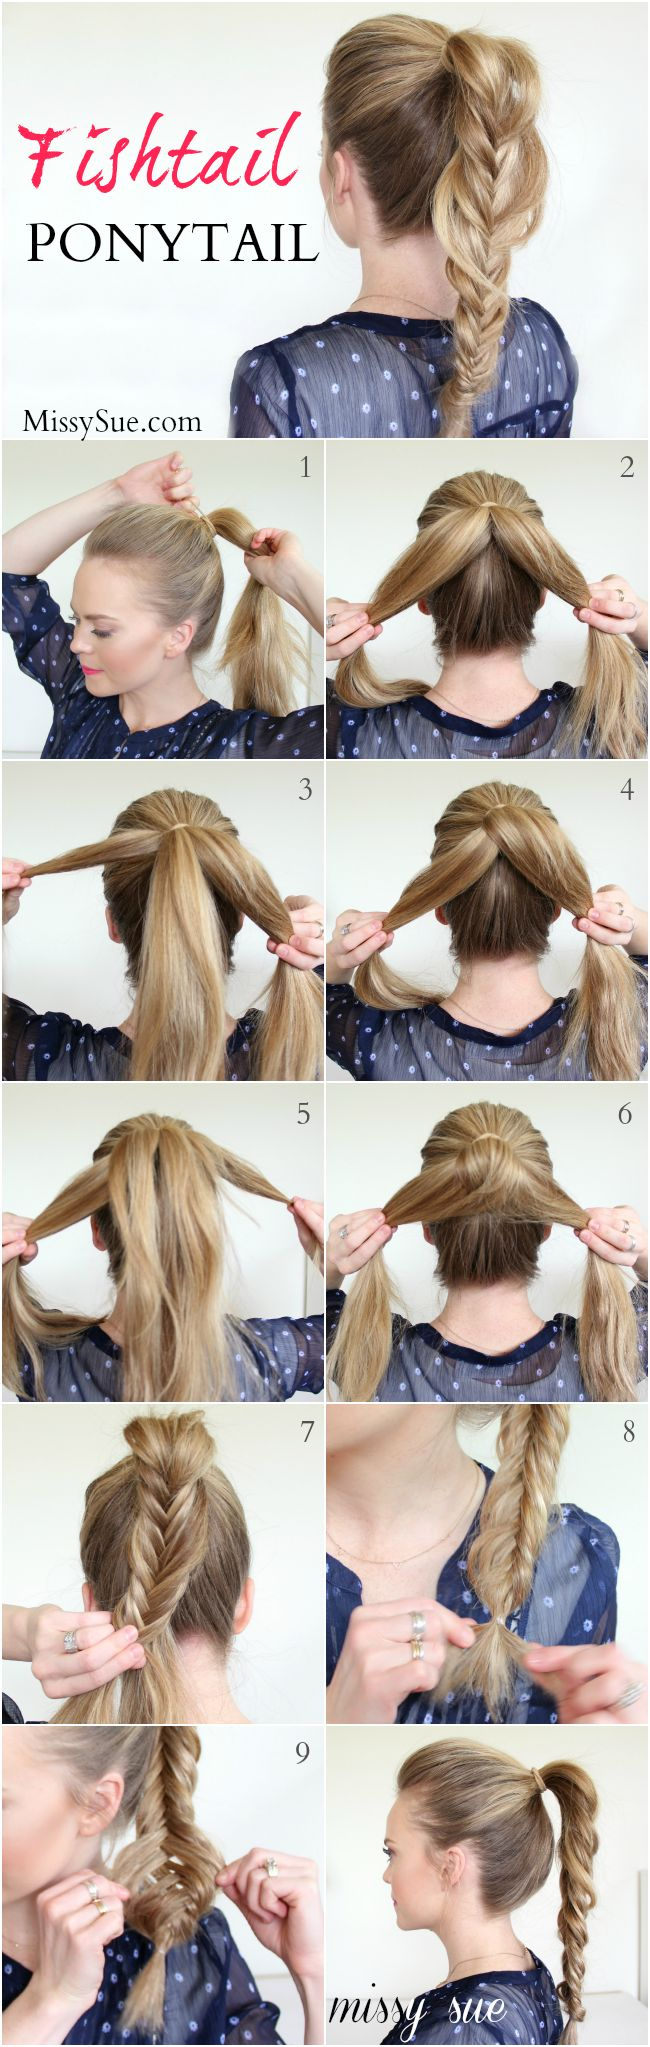 fishtail pony tail missy sue blog Braid 7 Fishtail Ponytail